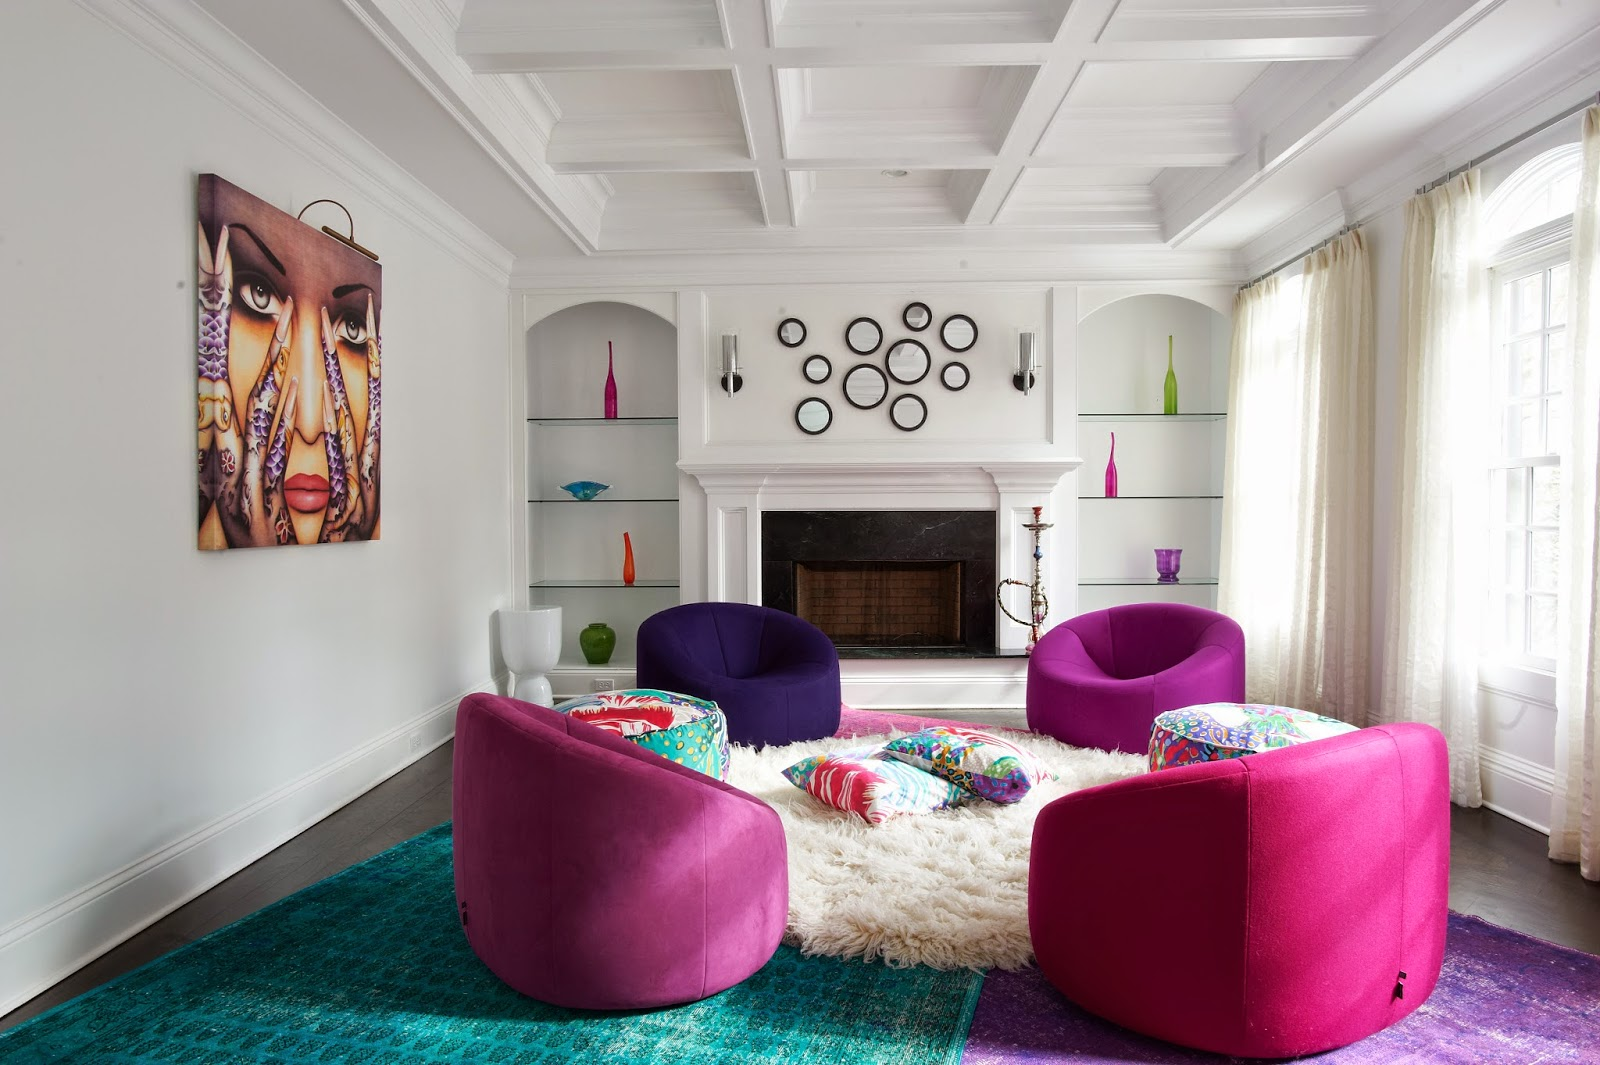 Pink in the Living Room Colorful Accent Chairs in Living Room with Fireplace and Mirror Wall Gallery Colorful Rugs Contemporary Art